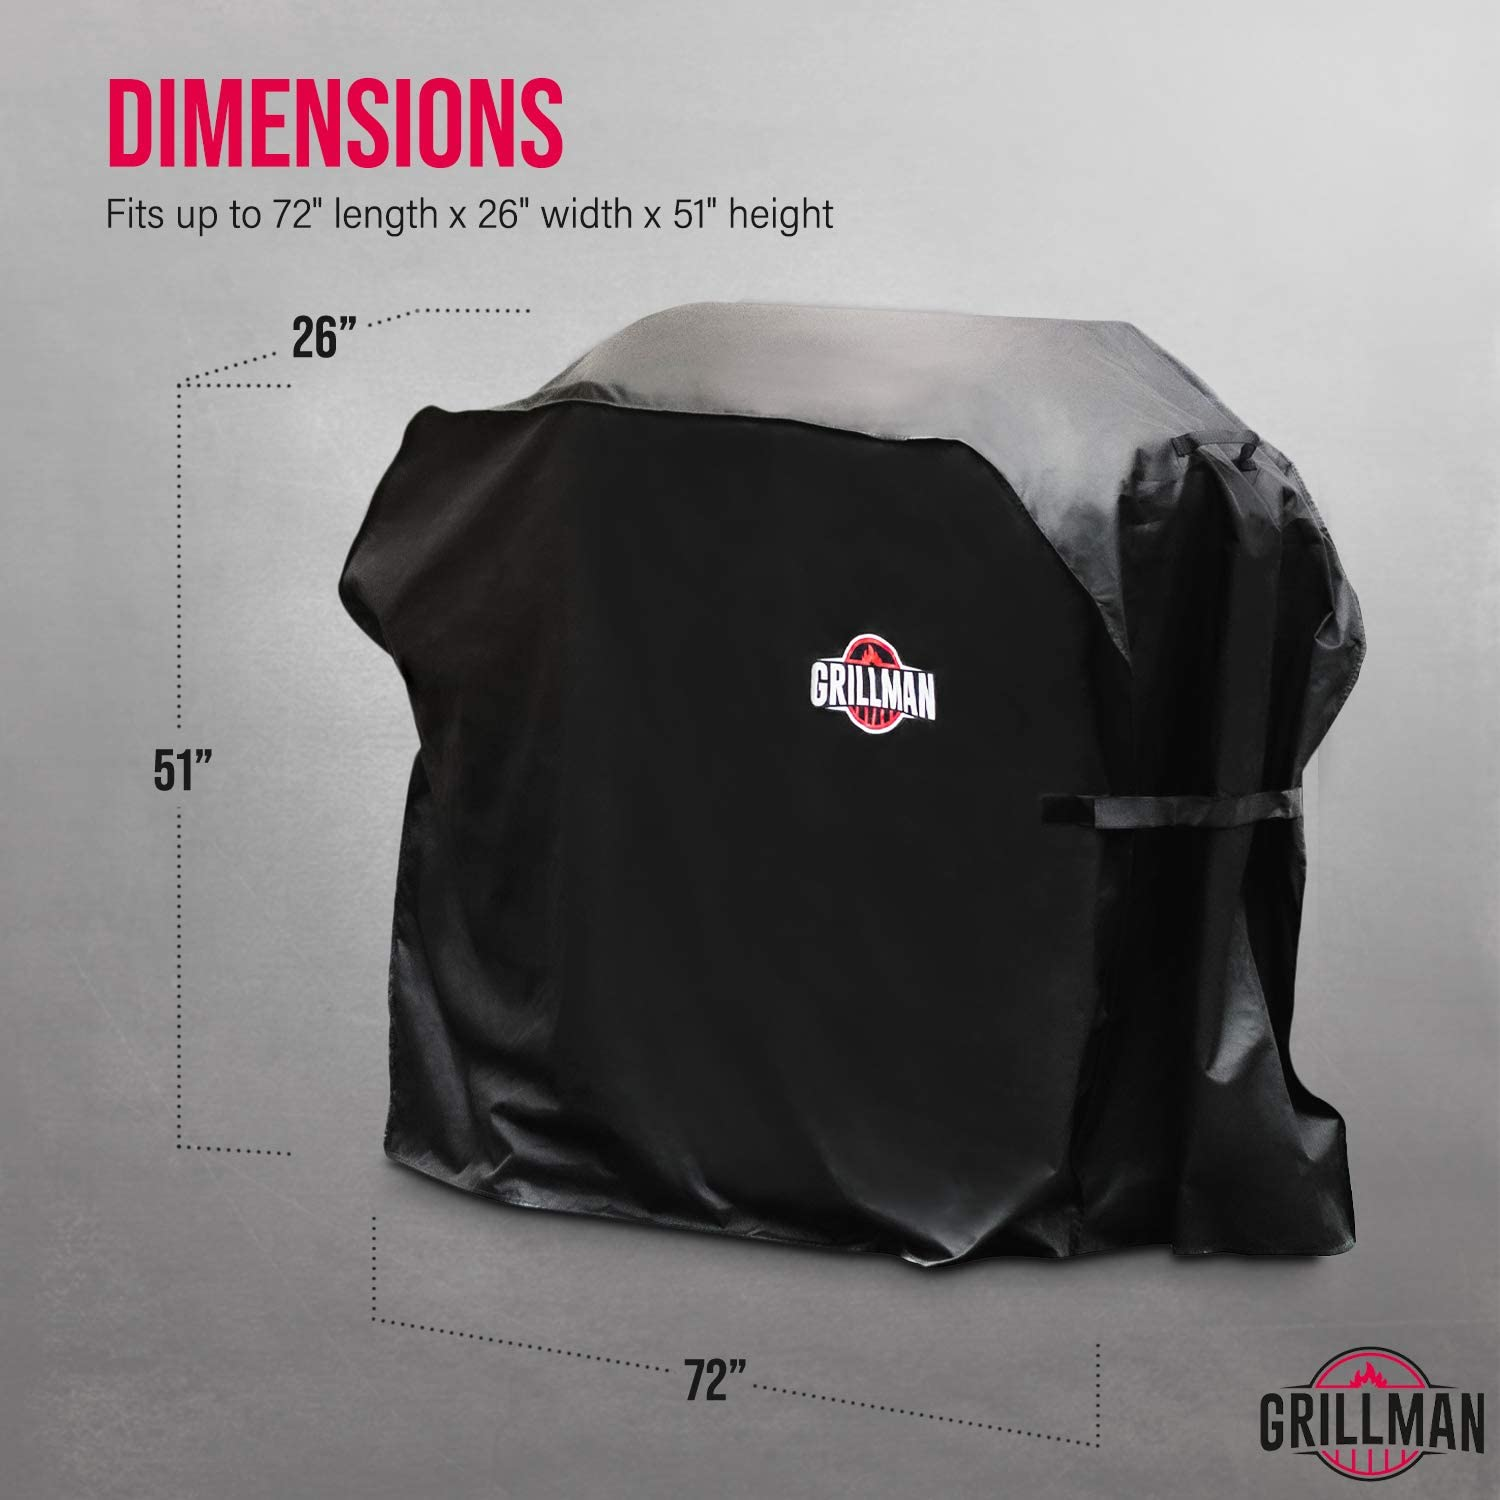 Grillman Premium Bbq Grill Cover Heavy Duty Gas Grill Cover For Weber Brinkmann Char Broil Etc Rip Proof Uv Water Resistant 72 Inch 183 Cm Black Amazon Co Uk Garden Outdoors